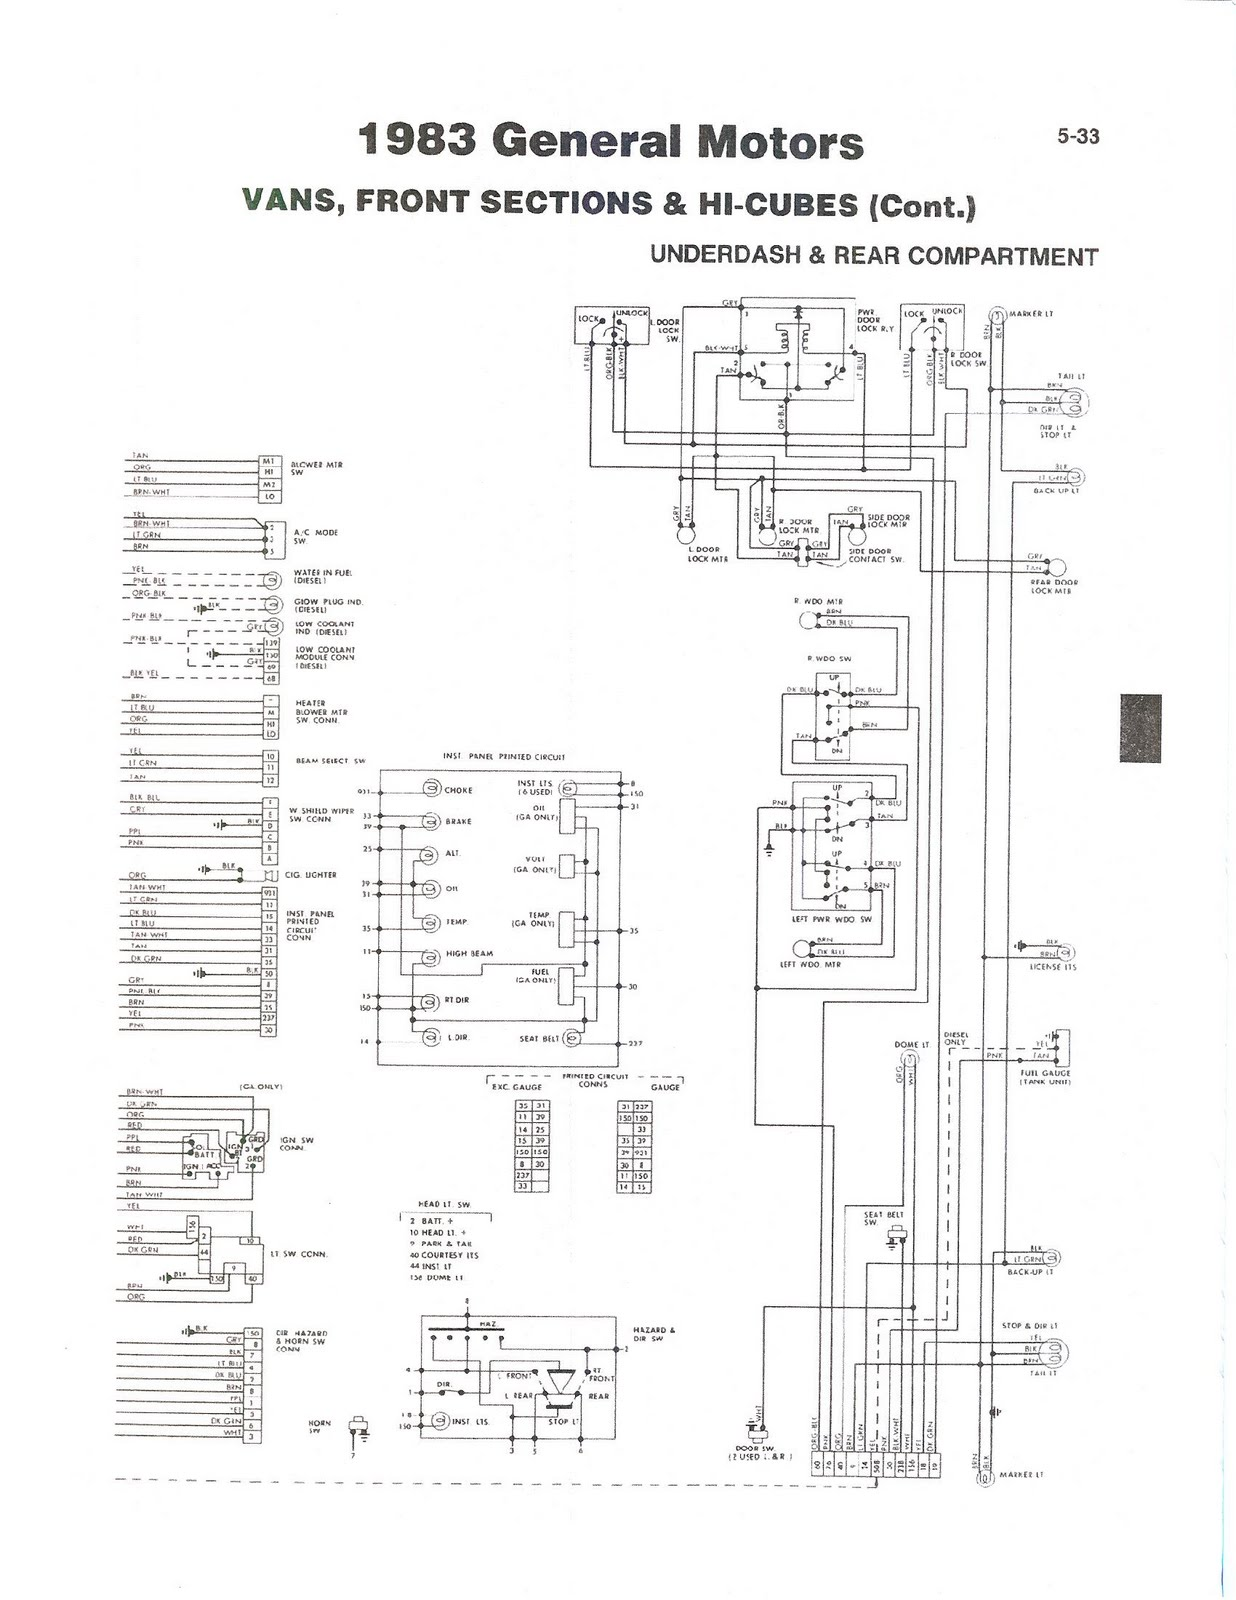 1996 southwind rv wiring ford best secret wiring diagram u2022 1978 ford econoline motorhome 1983 ford motorhome econoline fuel wiring diagram [ 1236 x 1600 Pixel ]